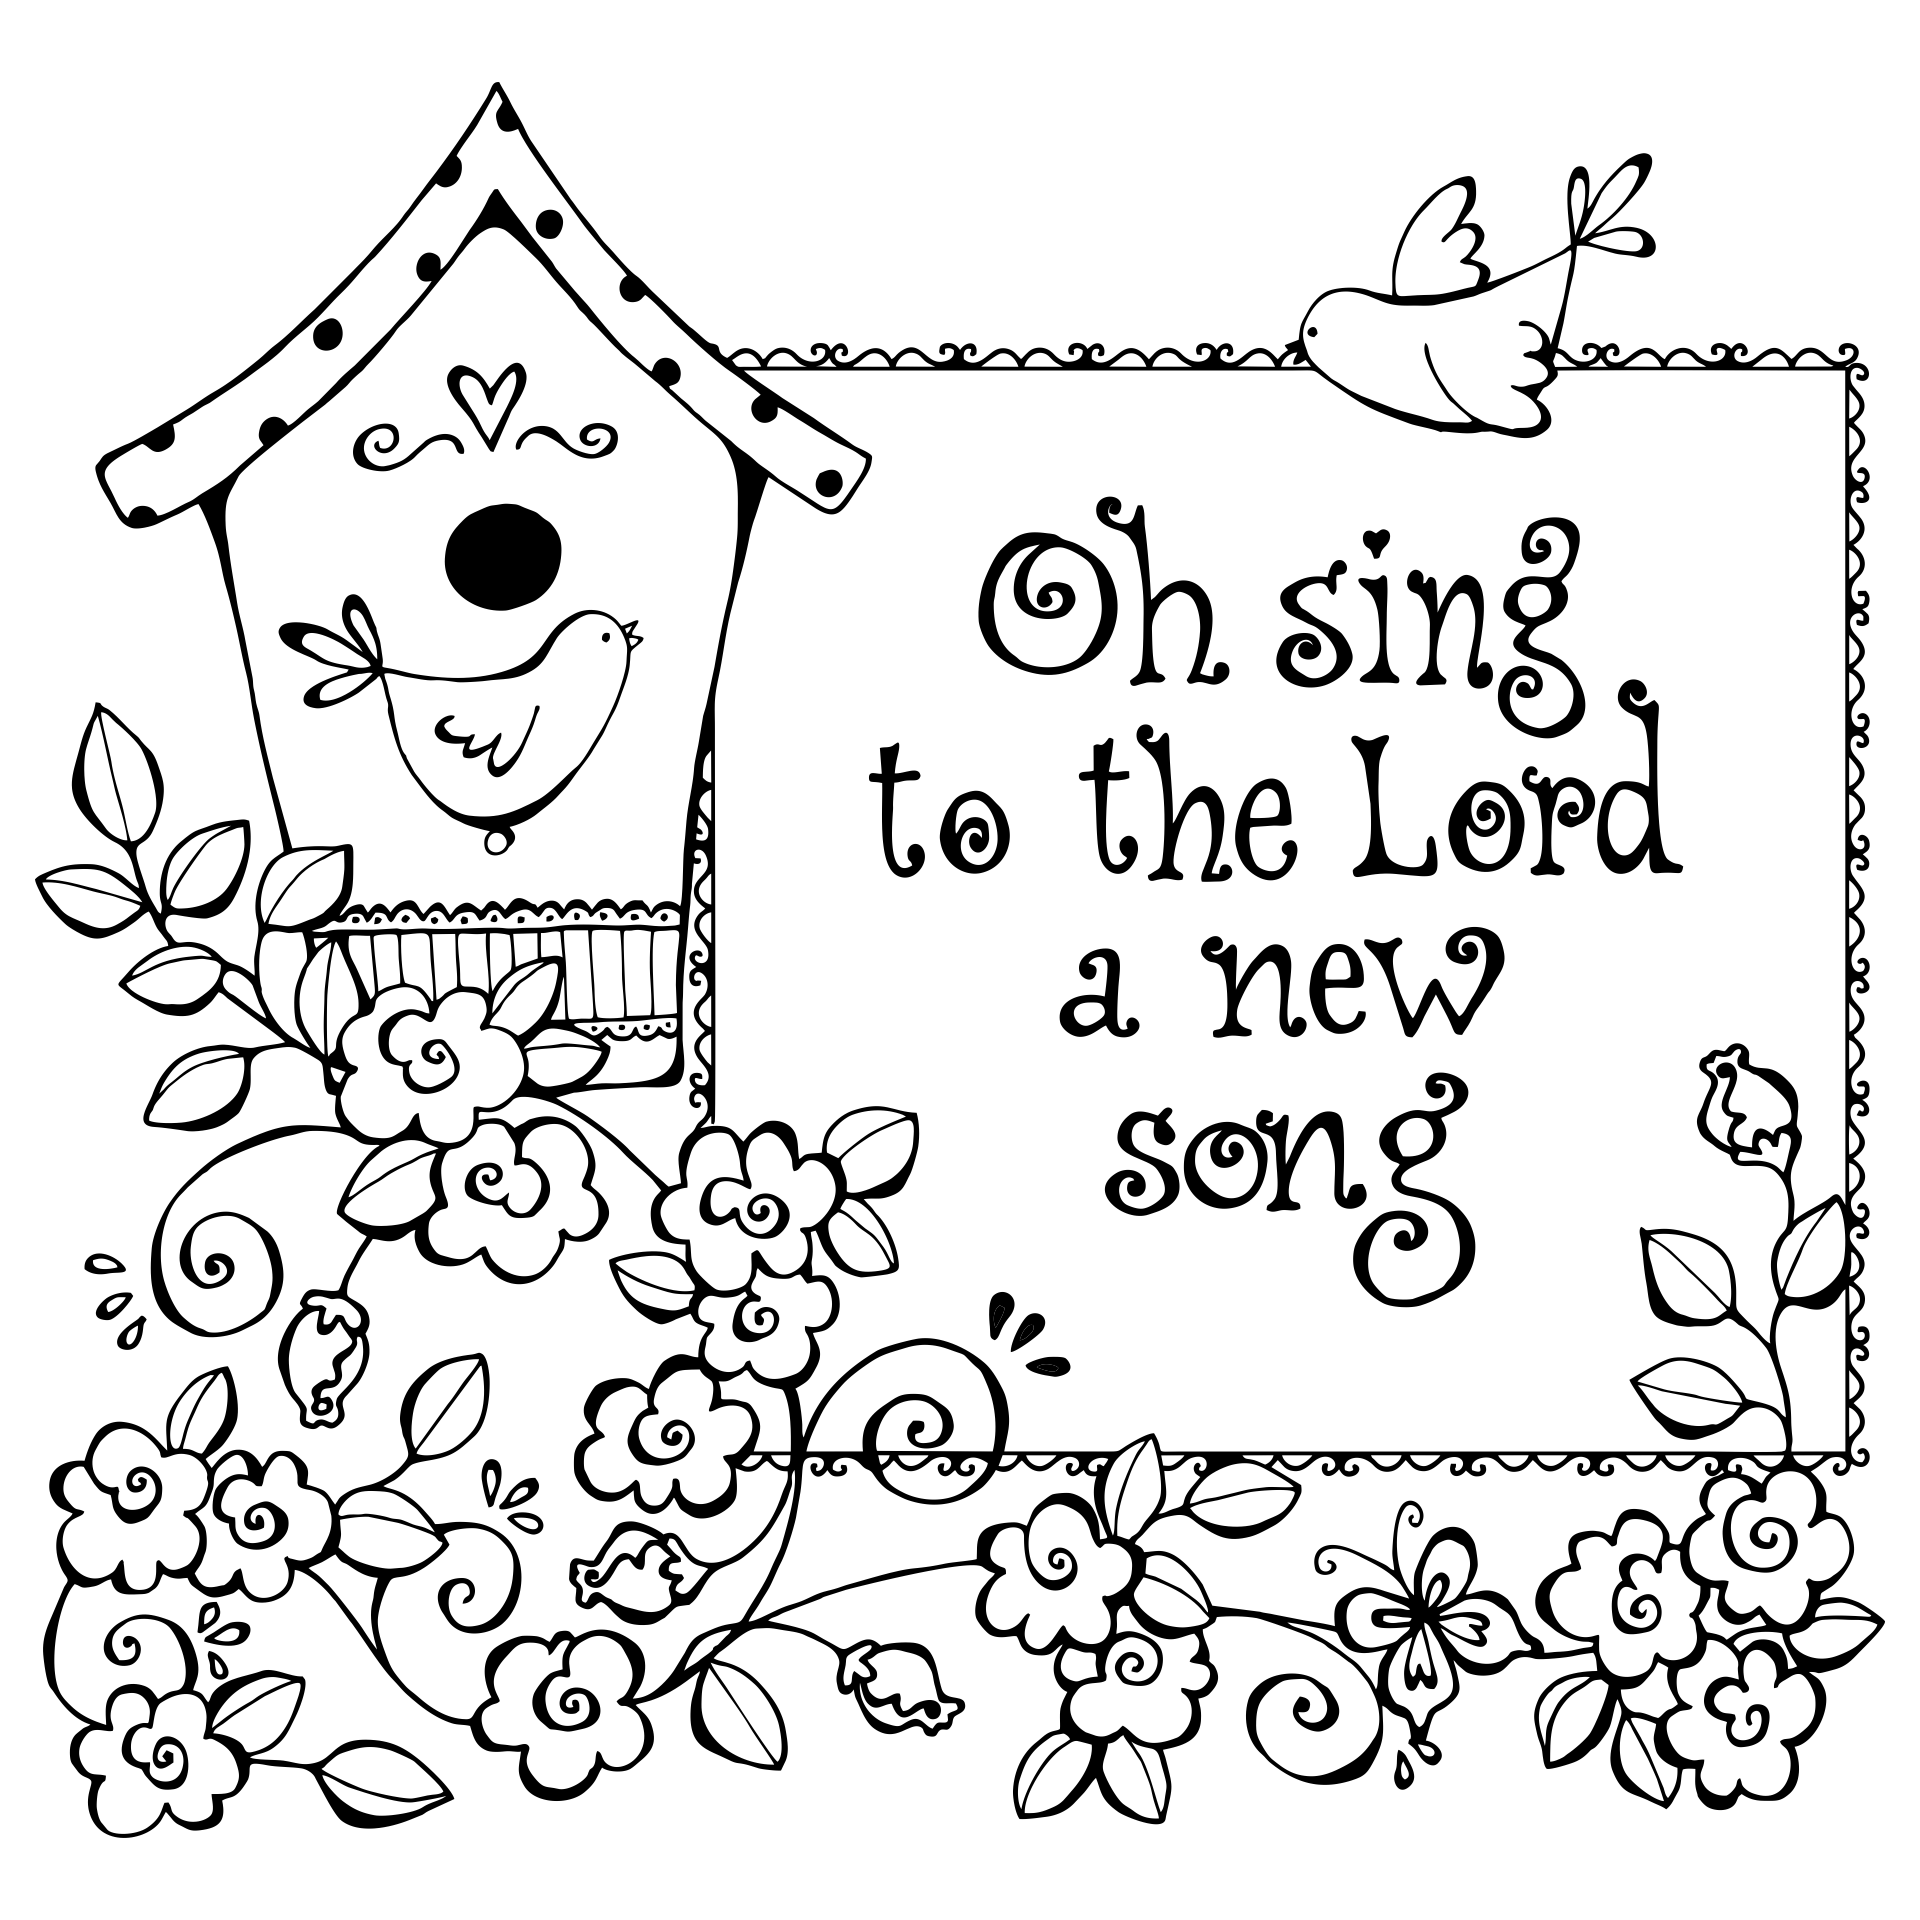 christian stuff coloring pages - photo#23